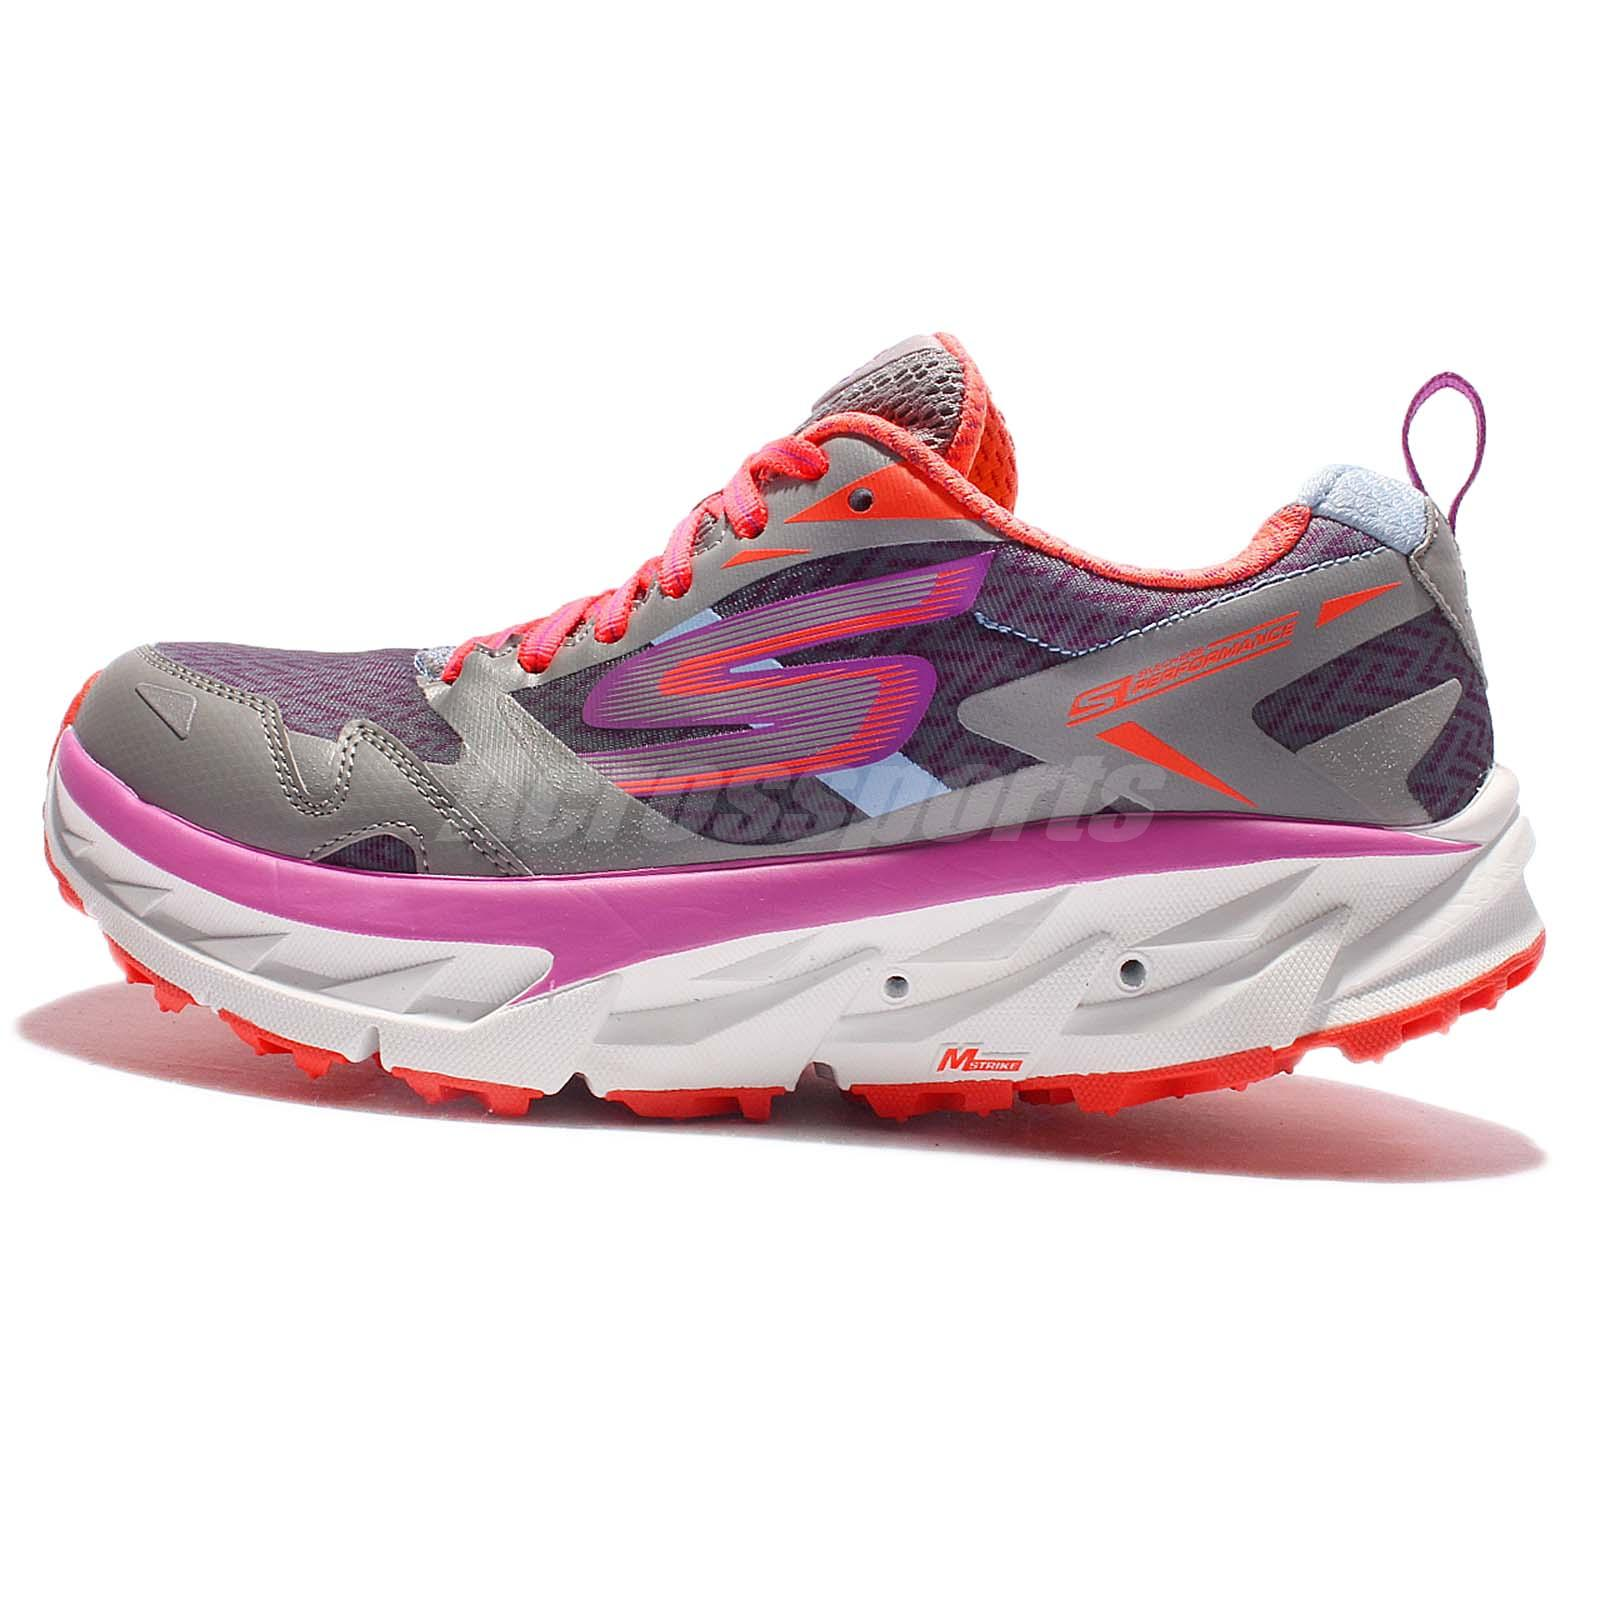 1111419146e49 skechers ladies running shoes for sale > OFF72% Discounts